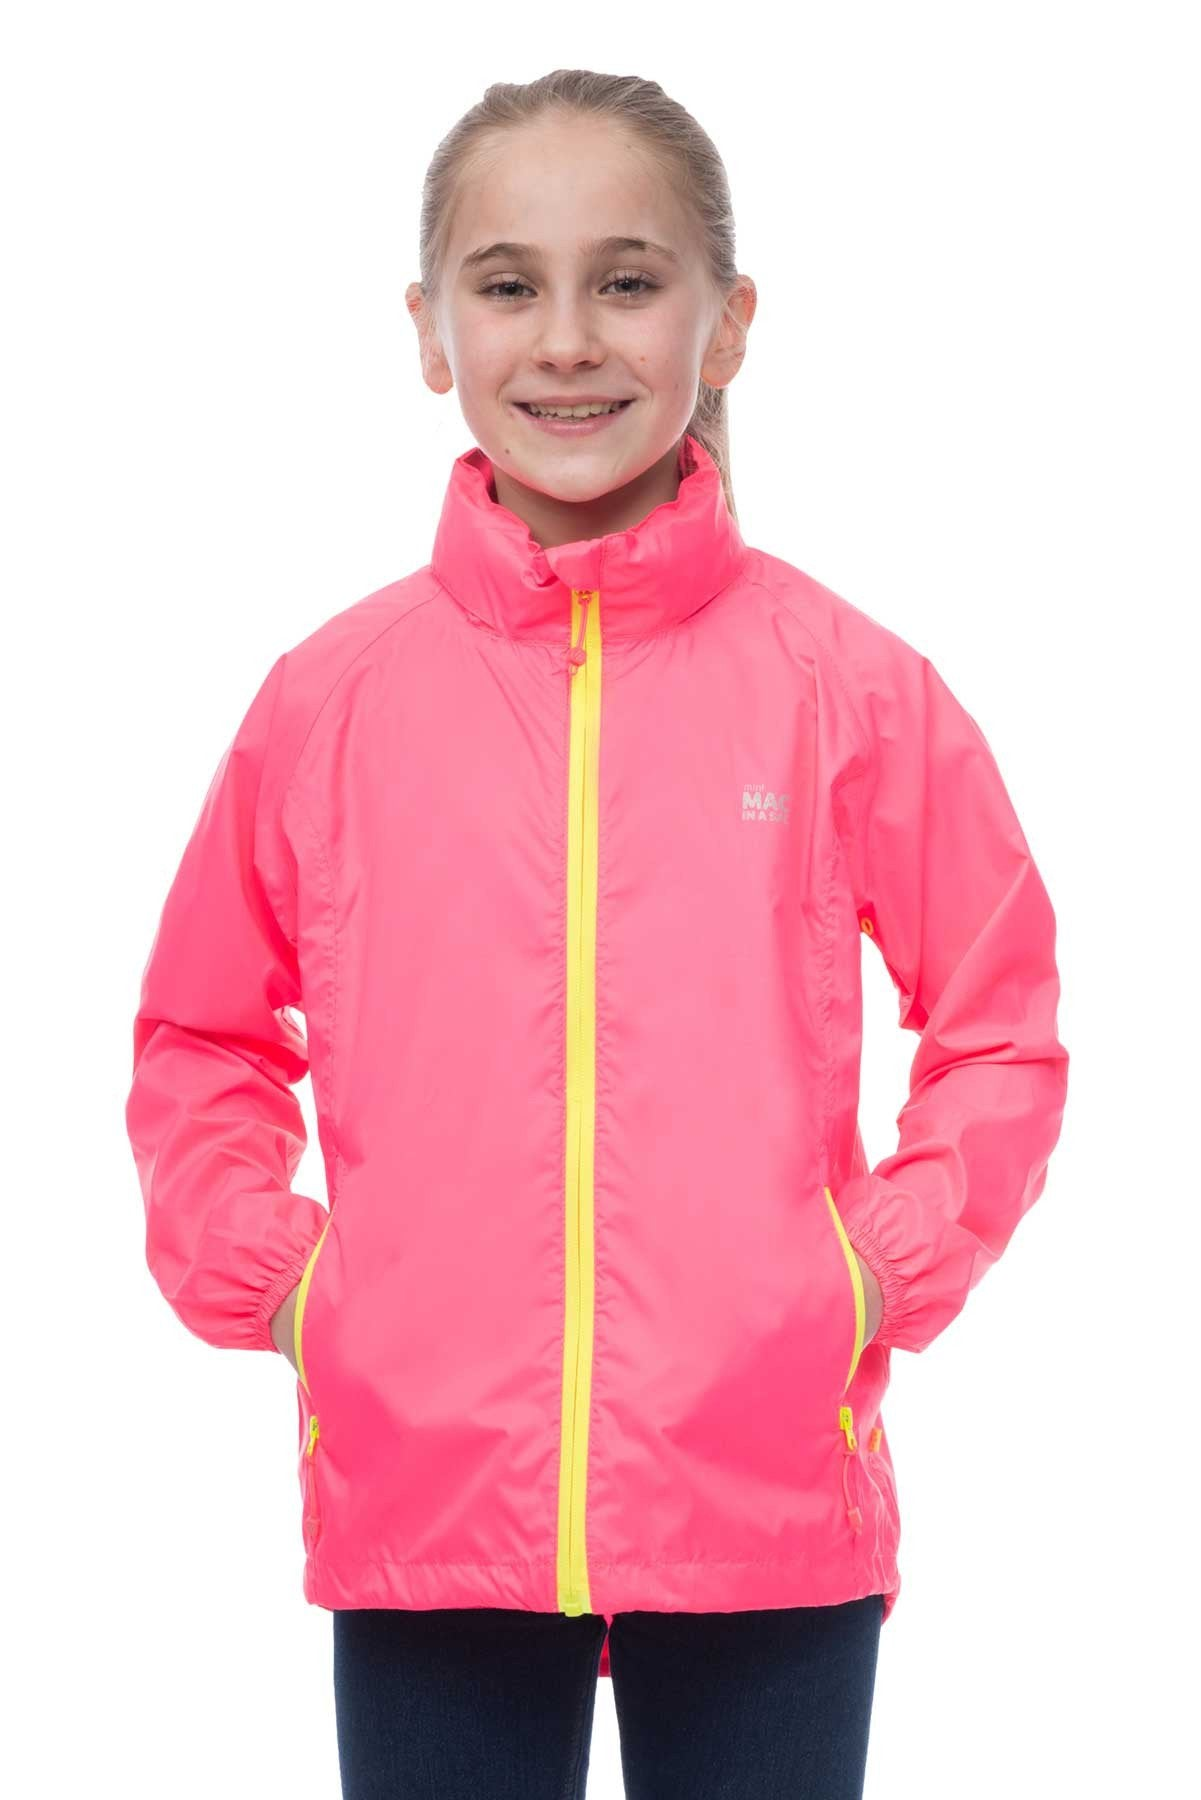 Kids Packable Waterproof Jacket - Neon Pink